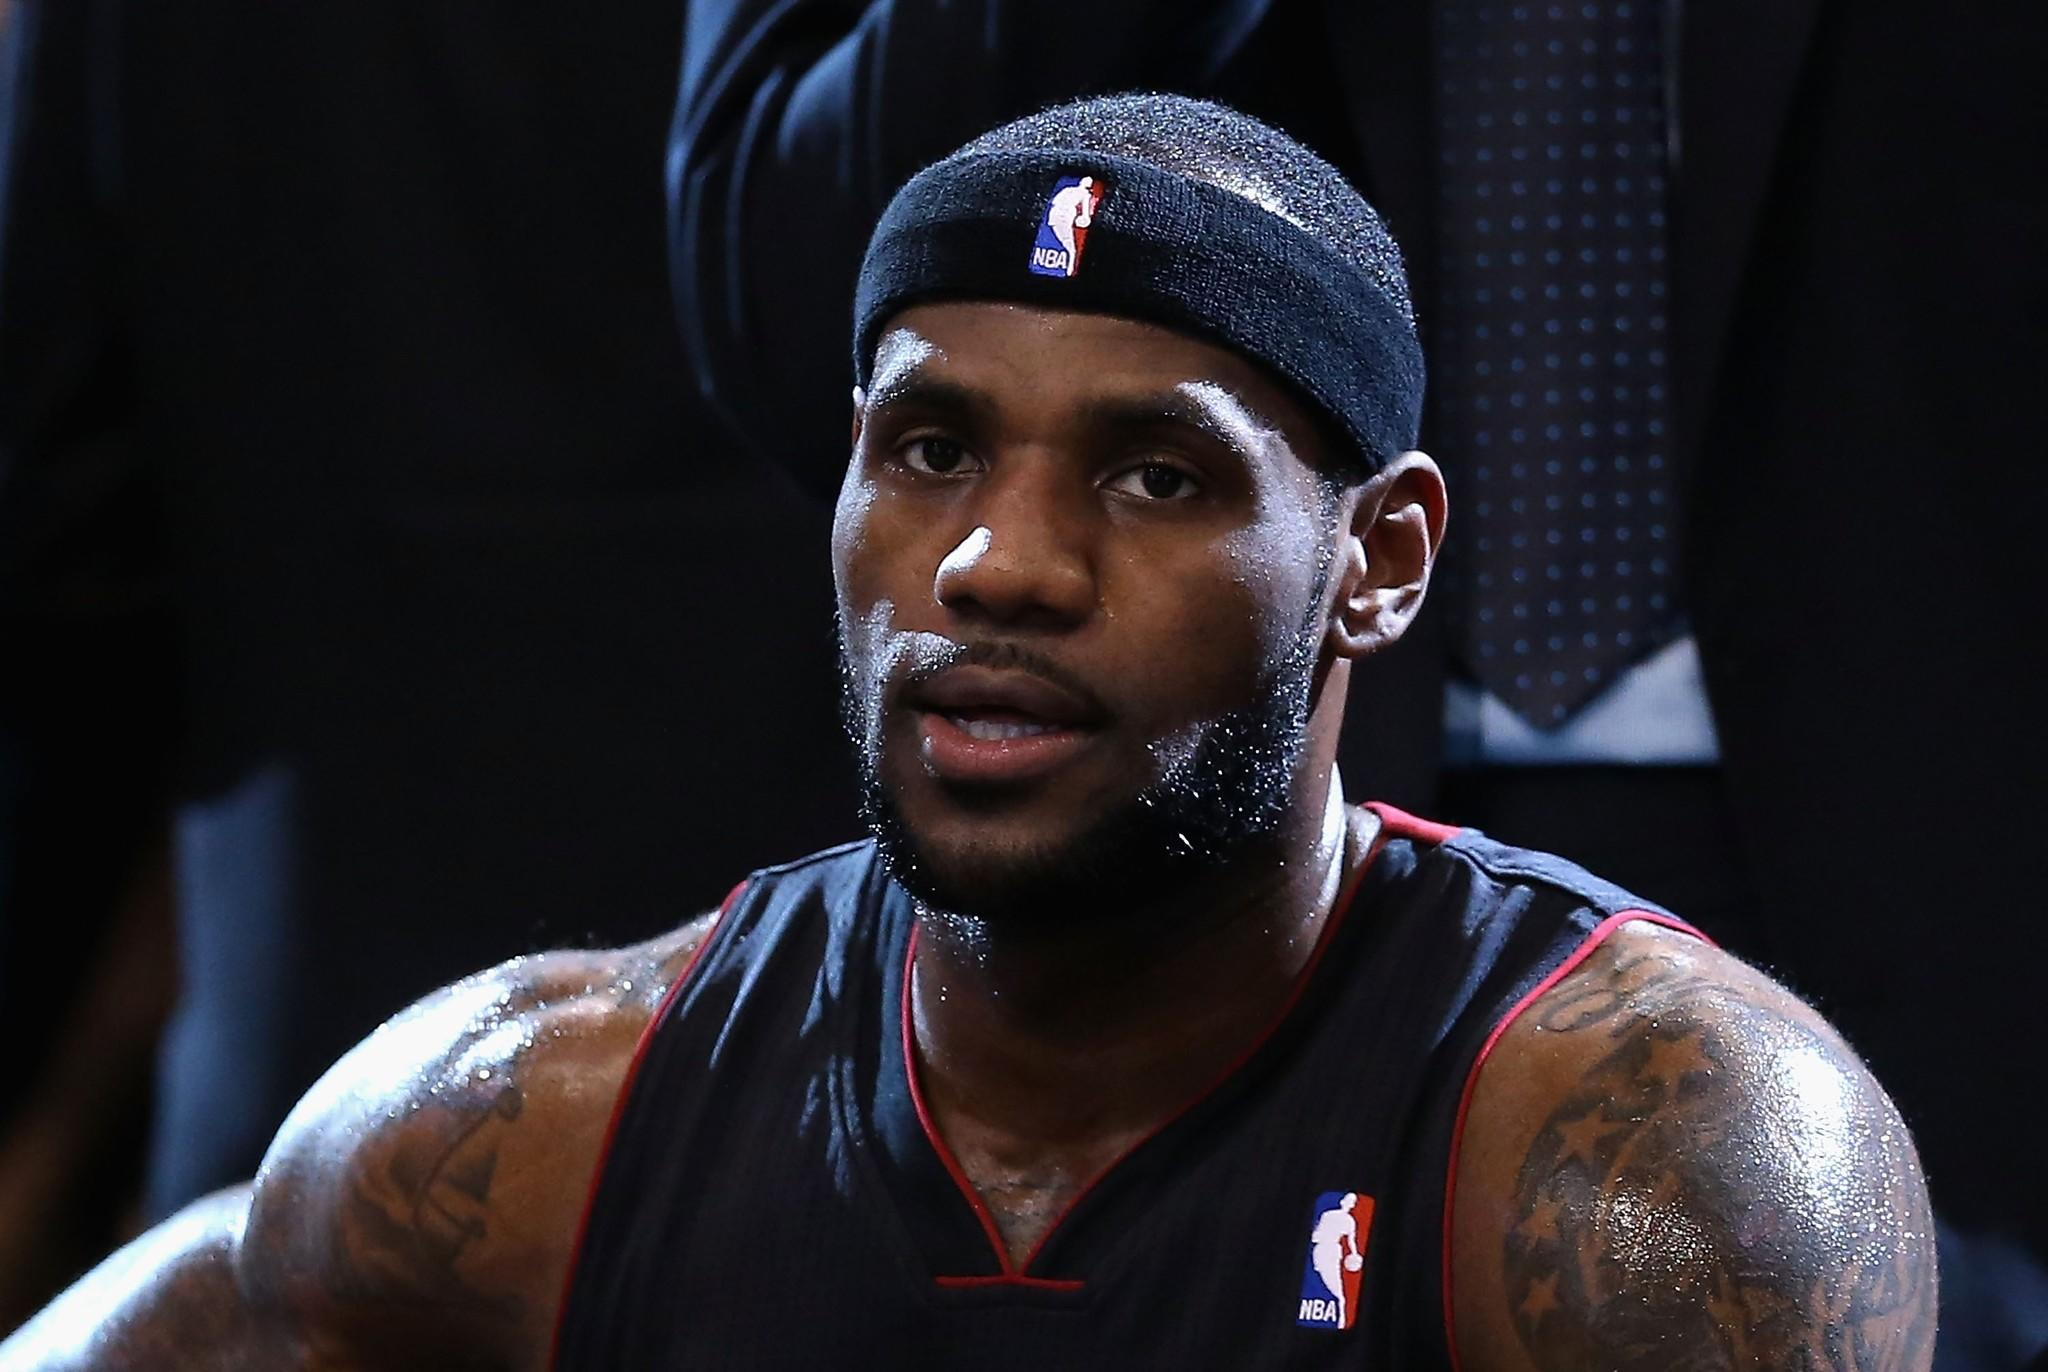 PHOENIX, AZ - FEBRUARY 11: LeBron James #6 of the Miami Heat sits on the bench during a break from the NBA game against the Phoenix Suns at US Airways Center on February 11, 2014 in Phoenix, Arizona. NOTE TO USER: User expressly acknowledges and agrees that, by downloading and or using this photograph, User is consenting to the terms and conditions of the Getty Images License Agreement.